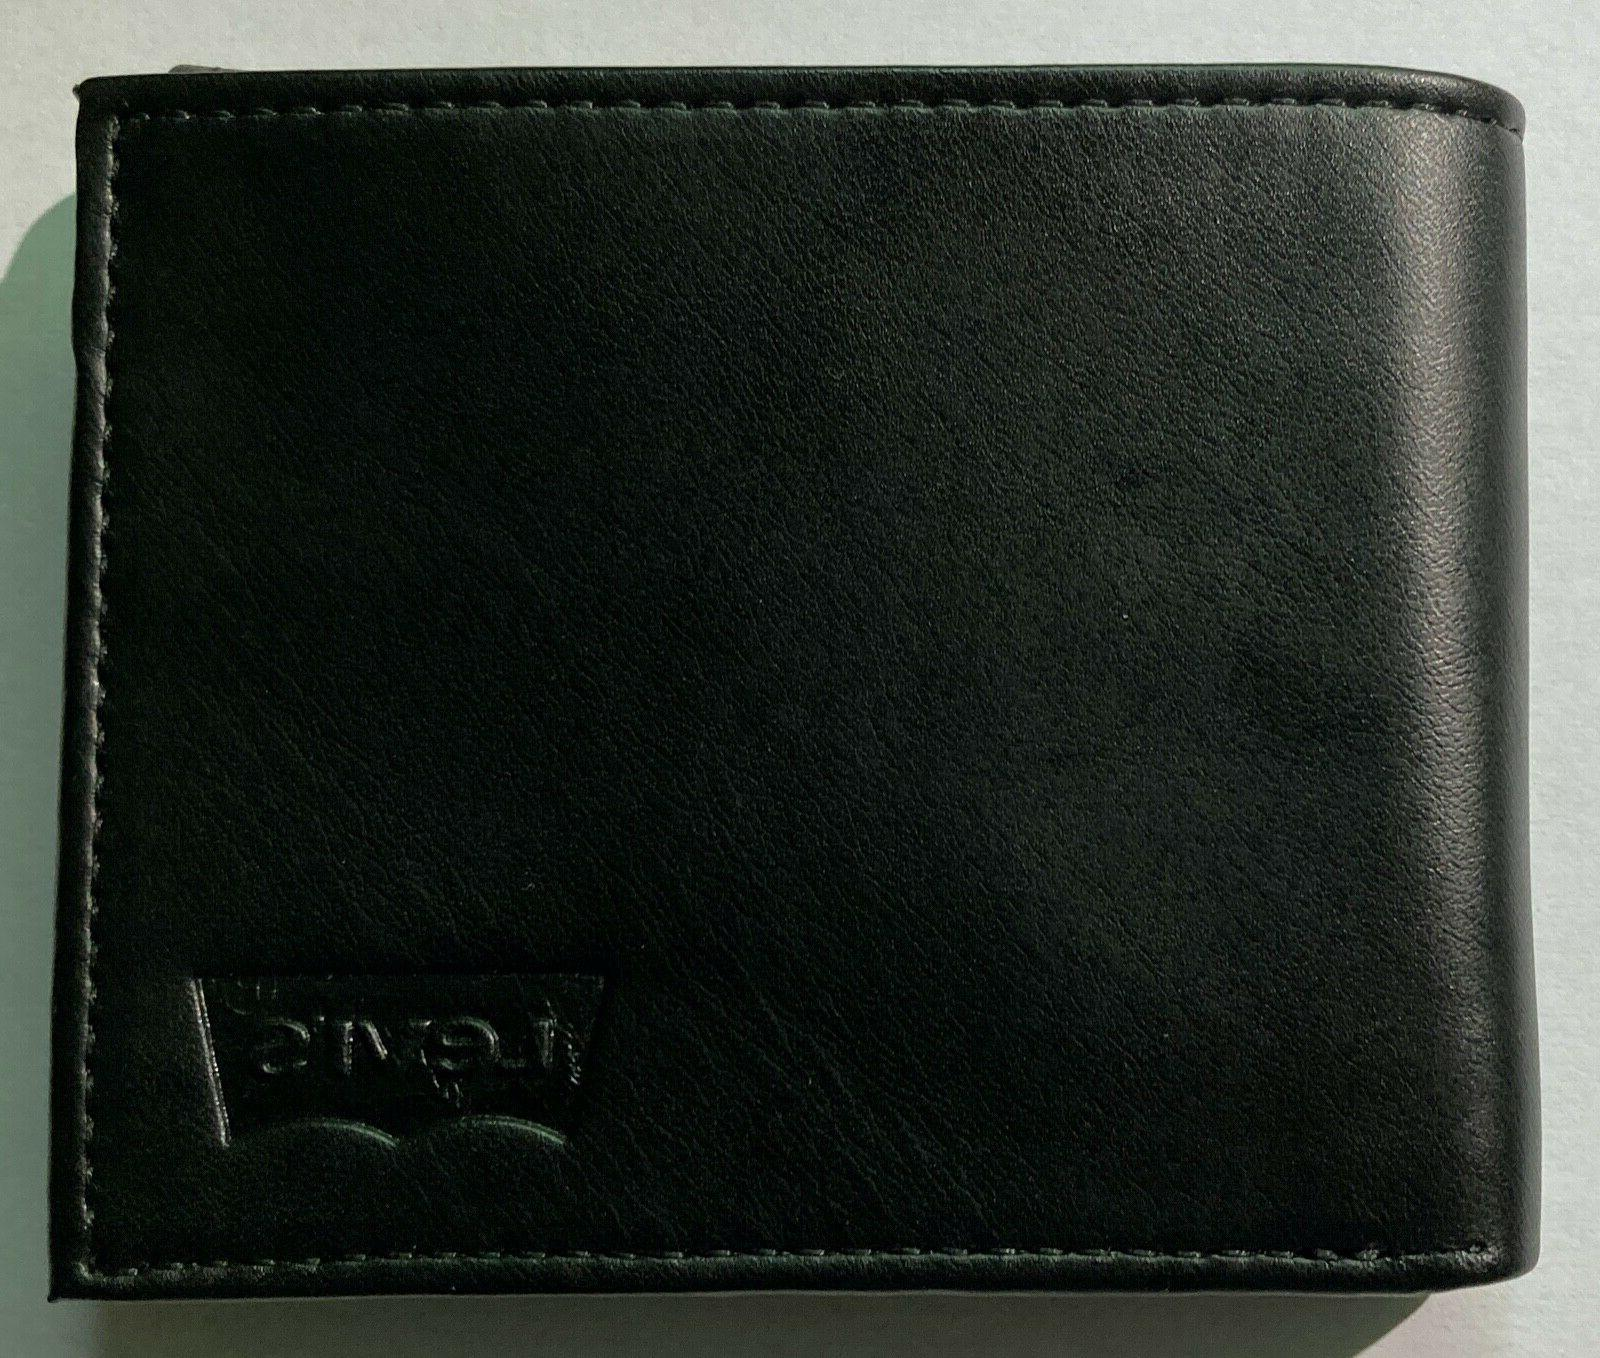 NEW Levi's Wallet Protection and - Black